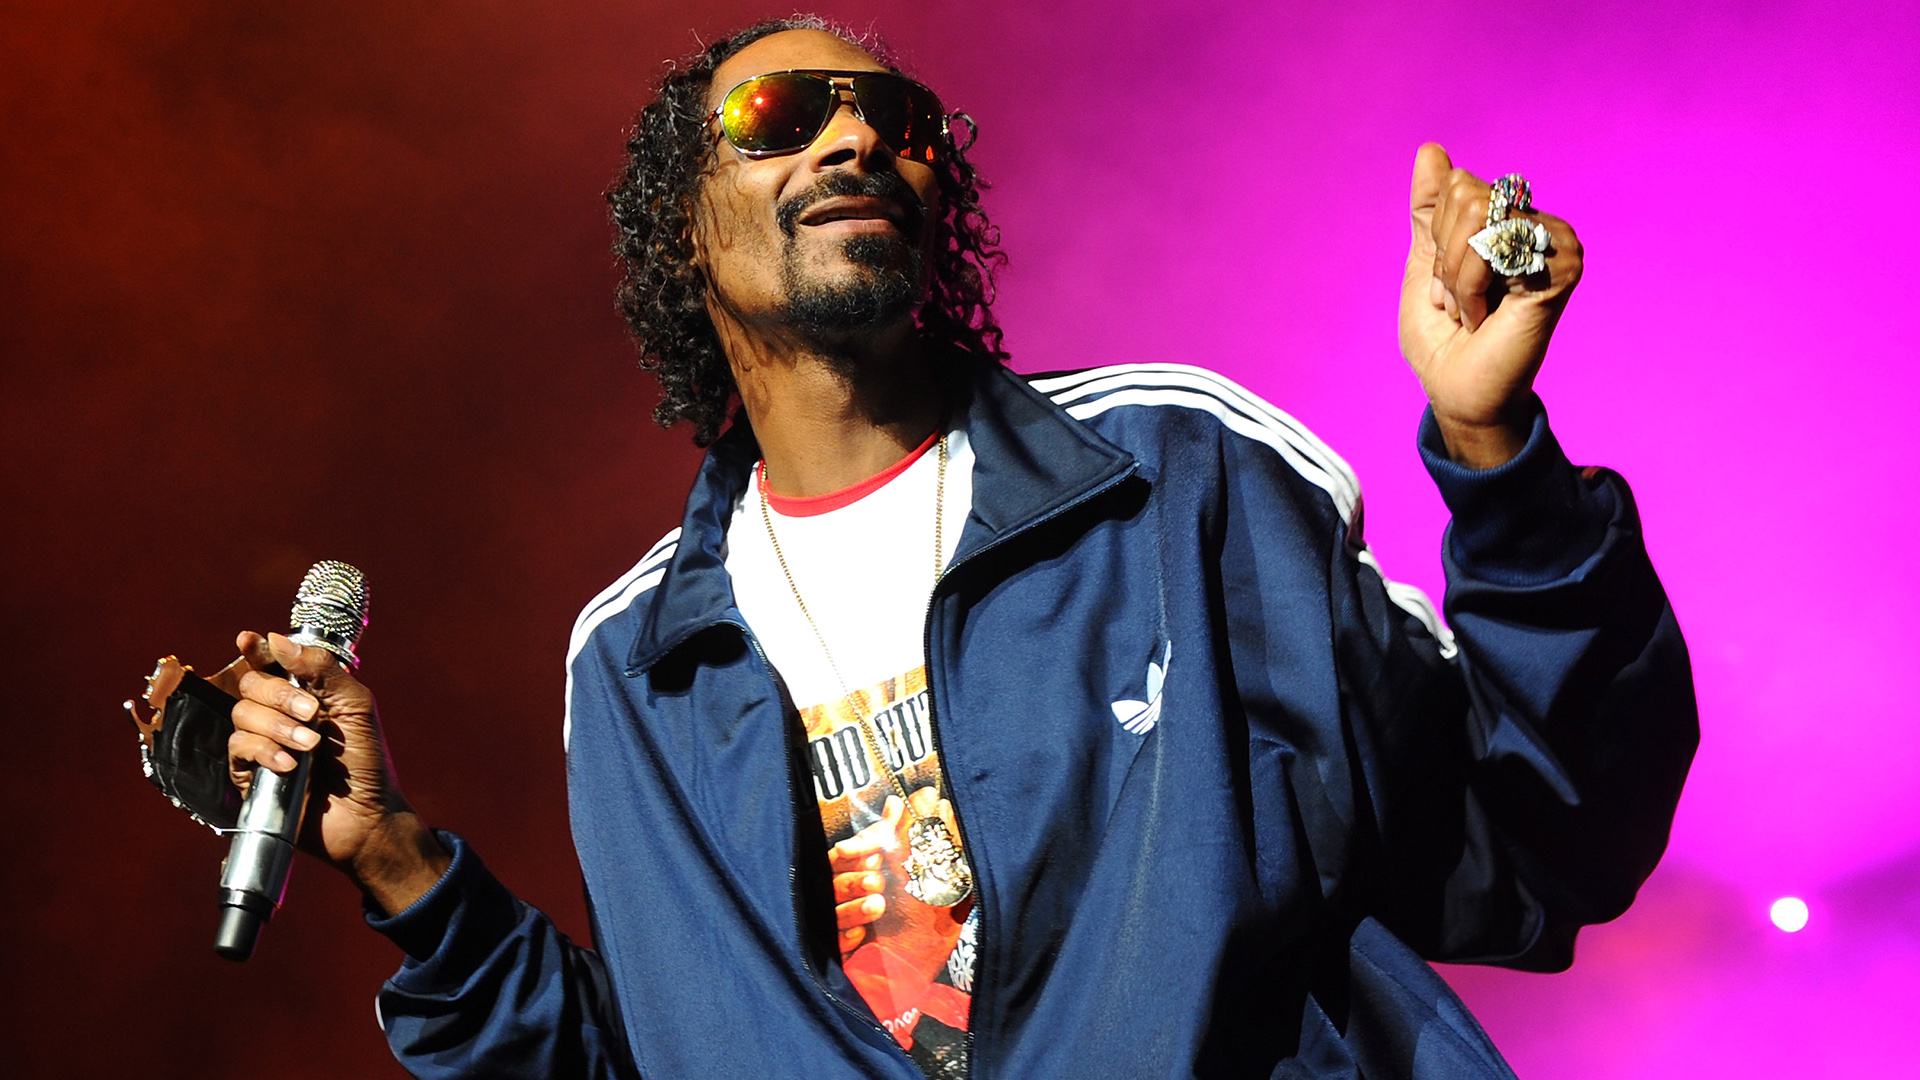 snoop dogg performing wallpaper 62587